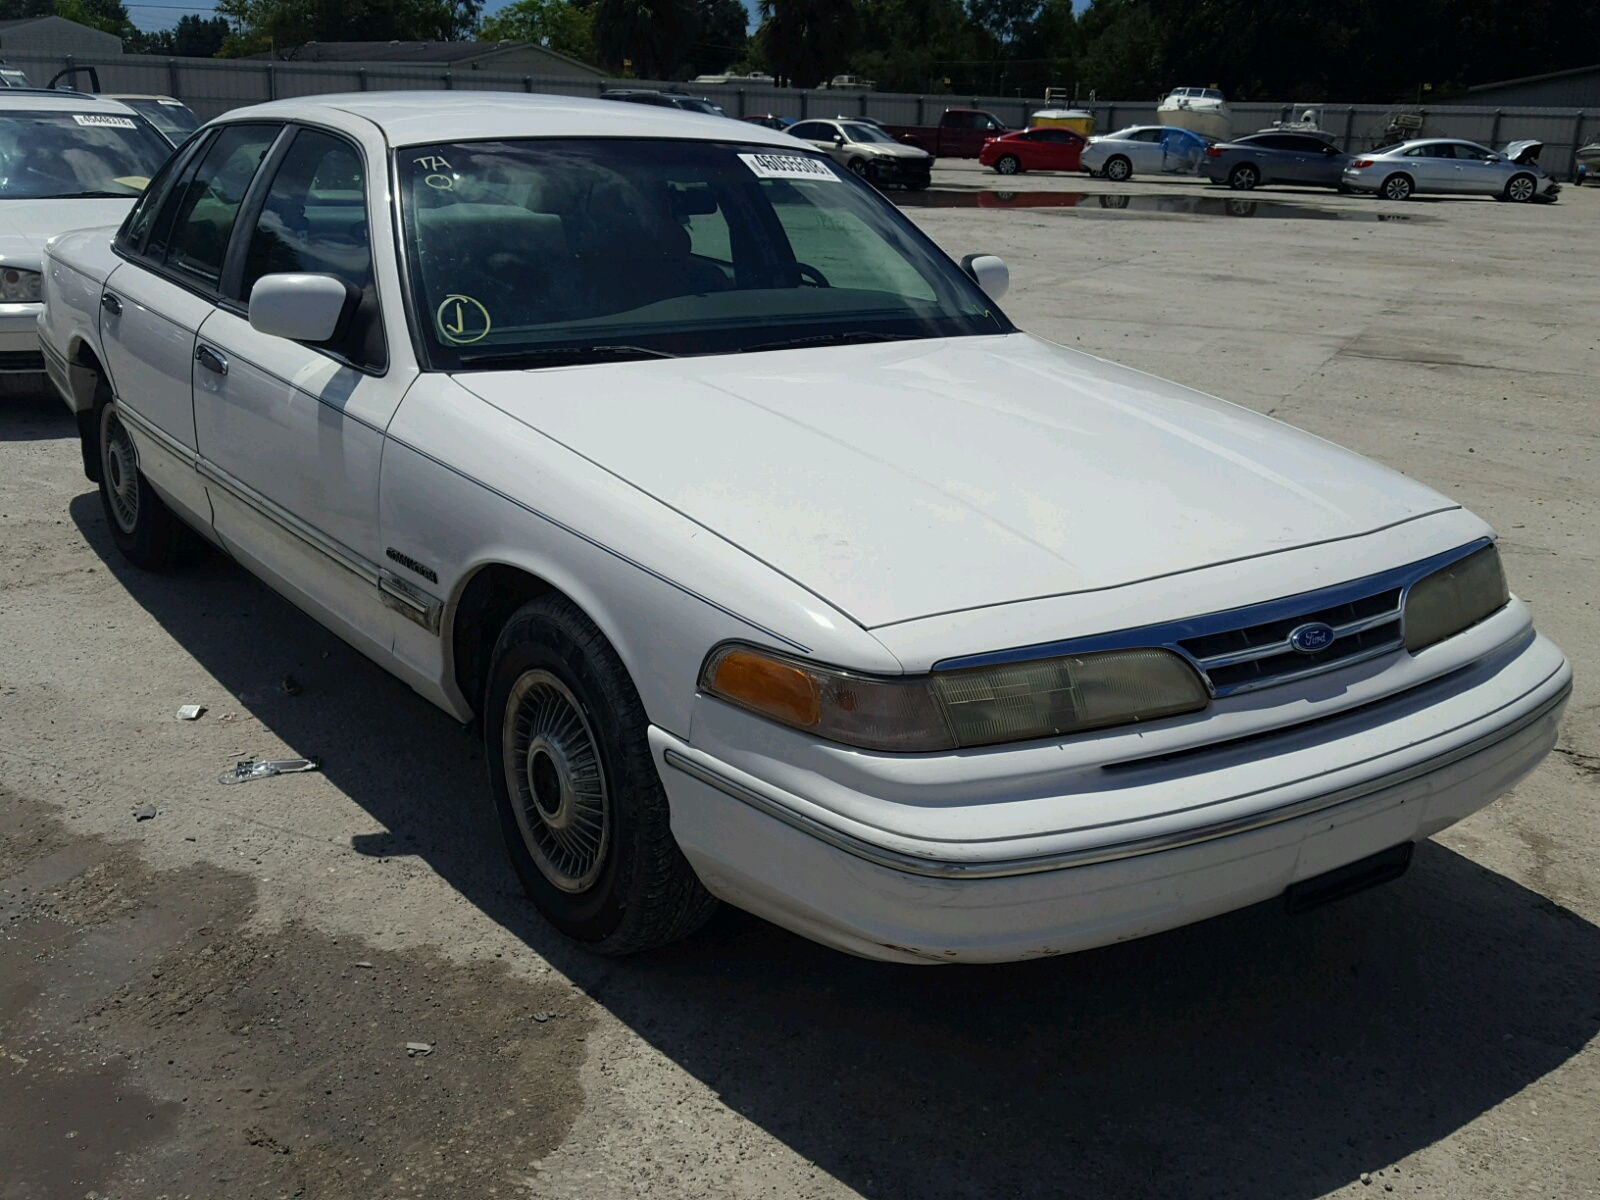 1995 Ford Crown Victoria Vict For Sale At Copart Punta Gorda Fl Lot 46055508